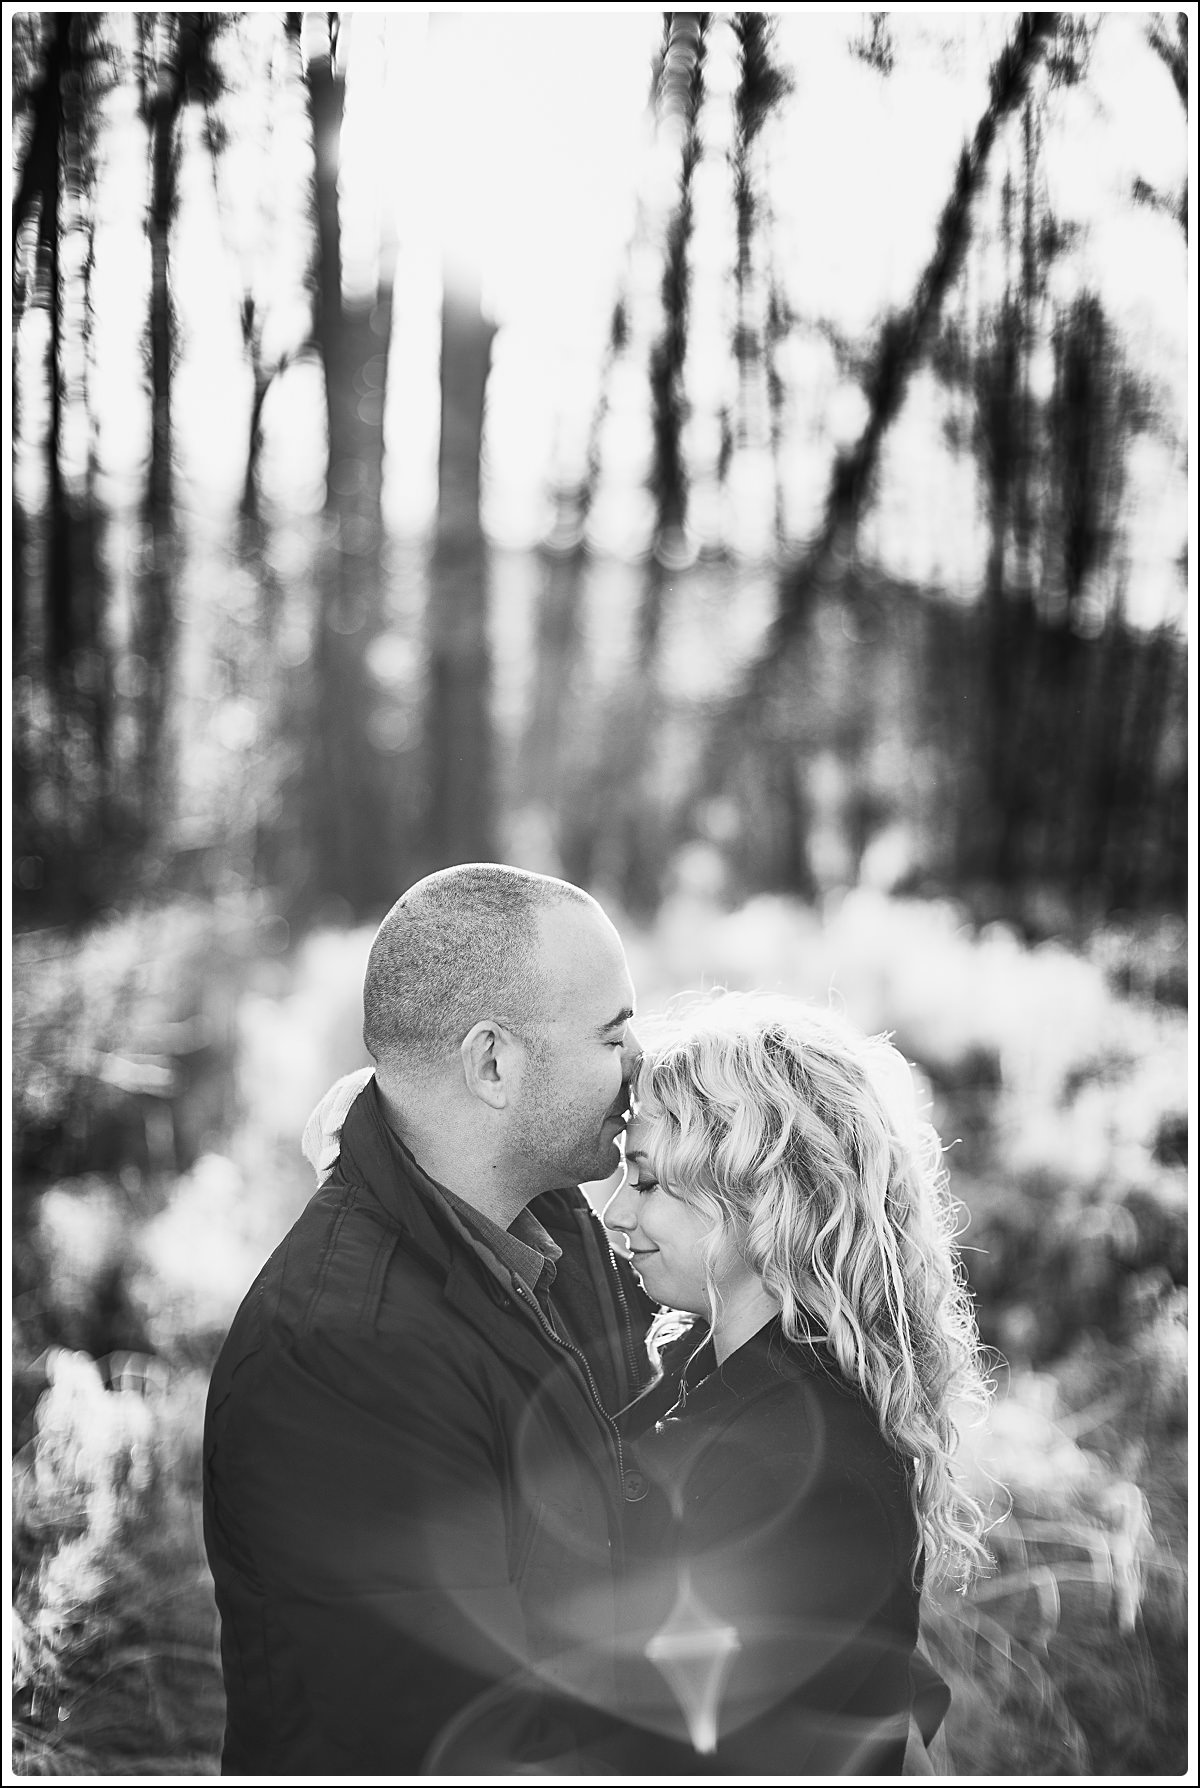 6:8 Wedding Photography,Fall,Fernie,Mark,Natural Light,Sunlight,Tammy,engagement session,